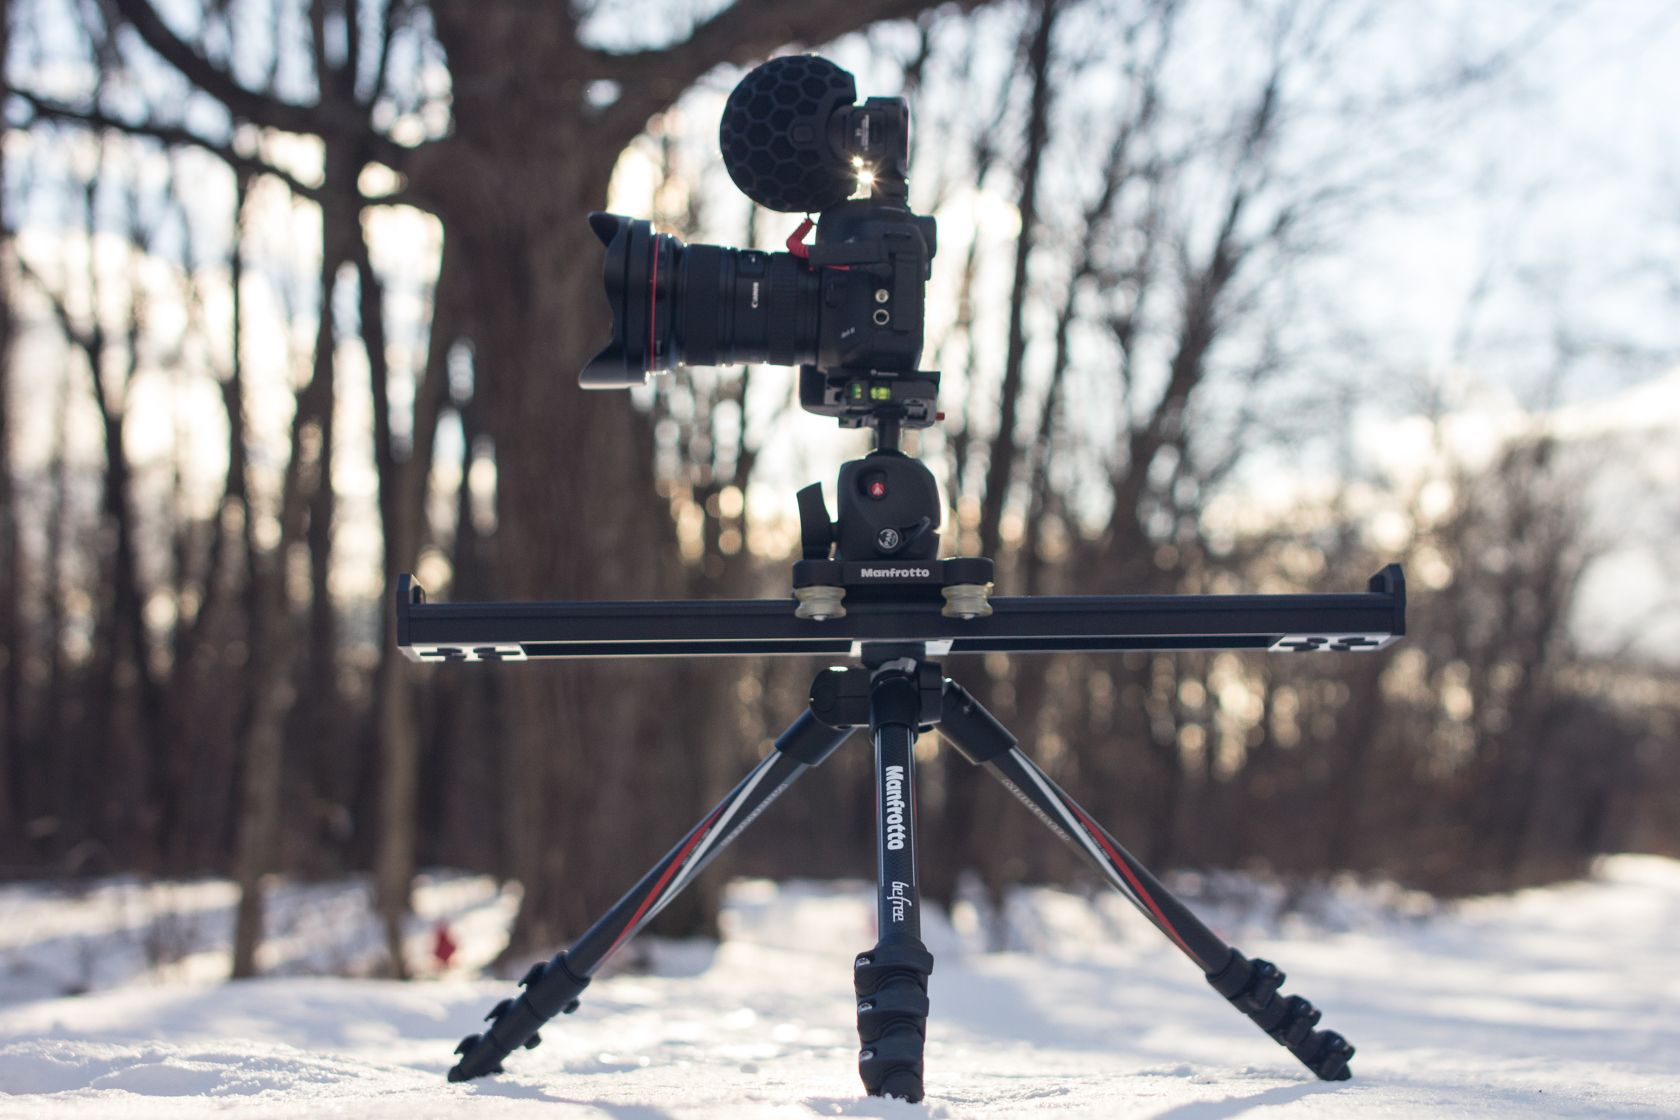 (Suburbs of Chicago, IL) {Pictured: Rode Stereo Mic X, Canon 5dmiii, Manfrotto XPRO ball head, 60cm slider, BeFree CF tripod}